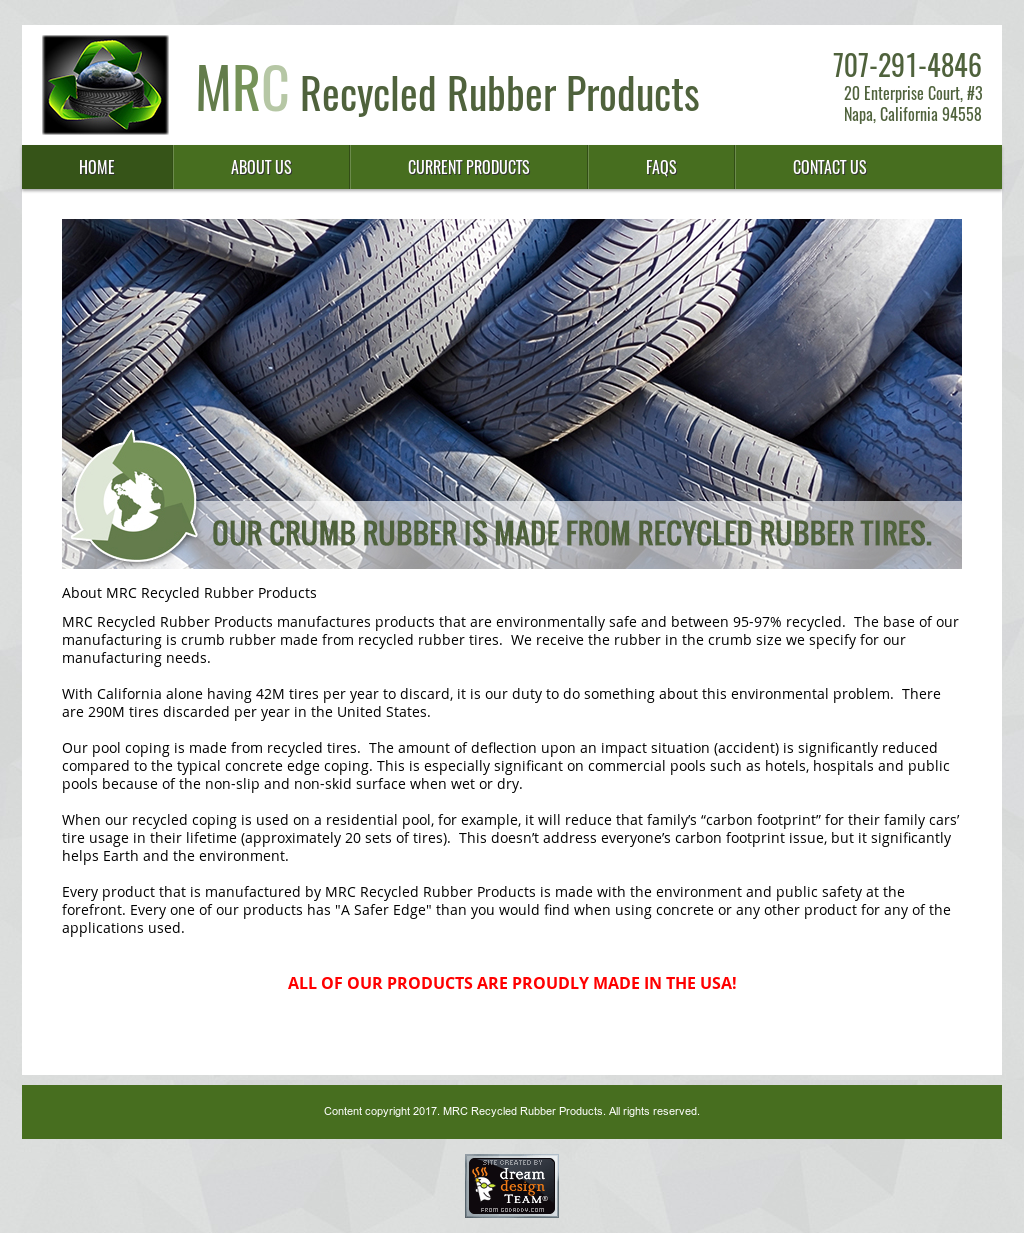 Mrc Recycled Rubber Products Competitors, Revenue and Employees